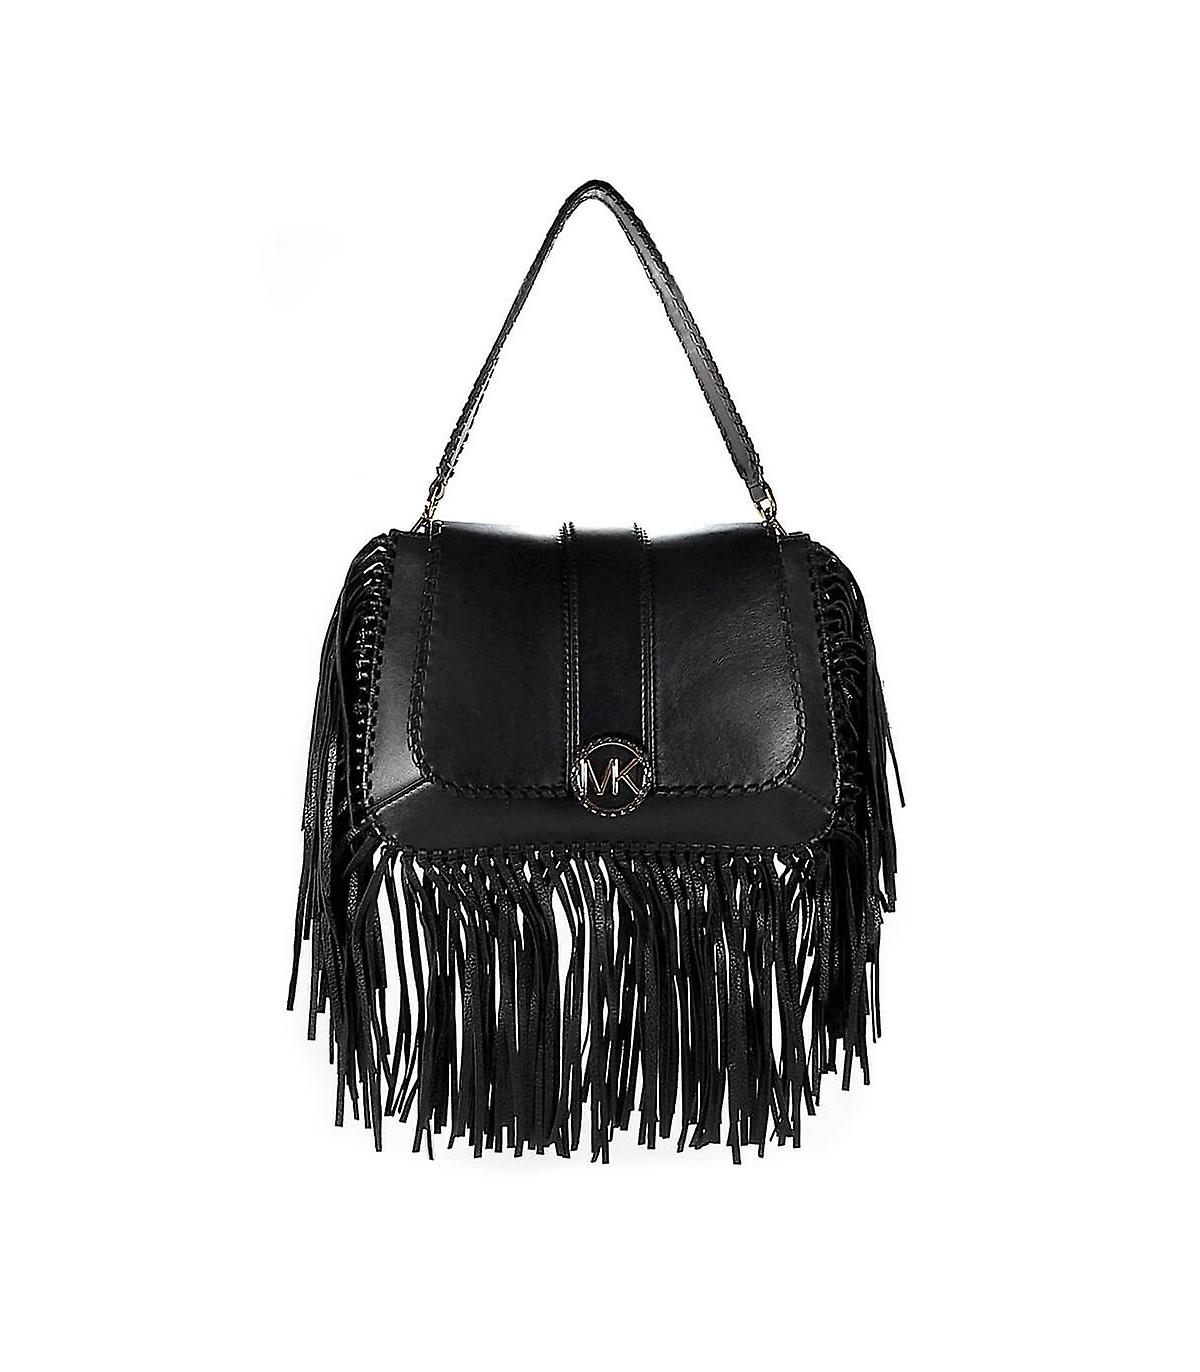 0340653ccde1 MICHAEL KORS BLACK LILLIE MEDIUM FLAP SHOULDER BAG